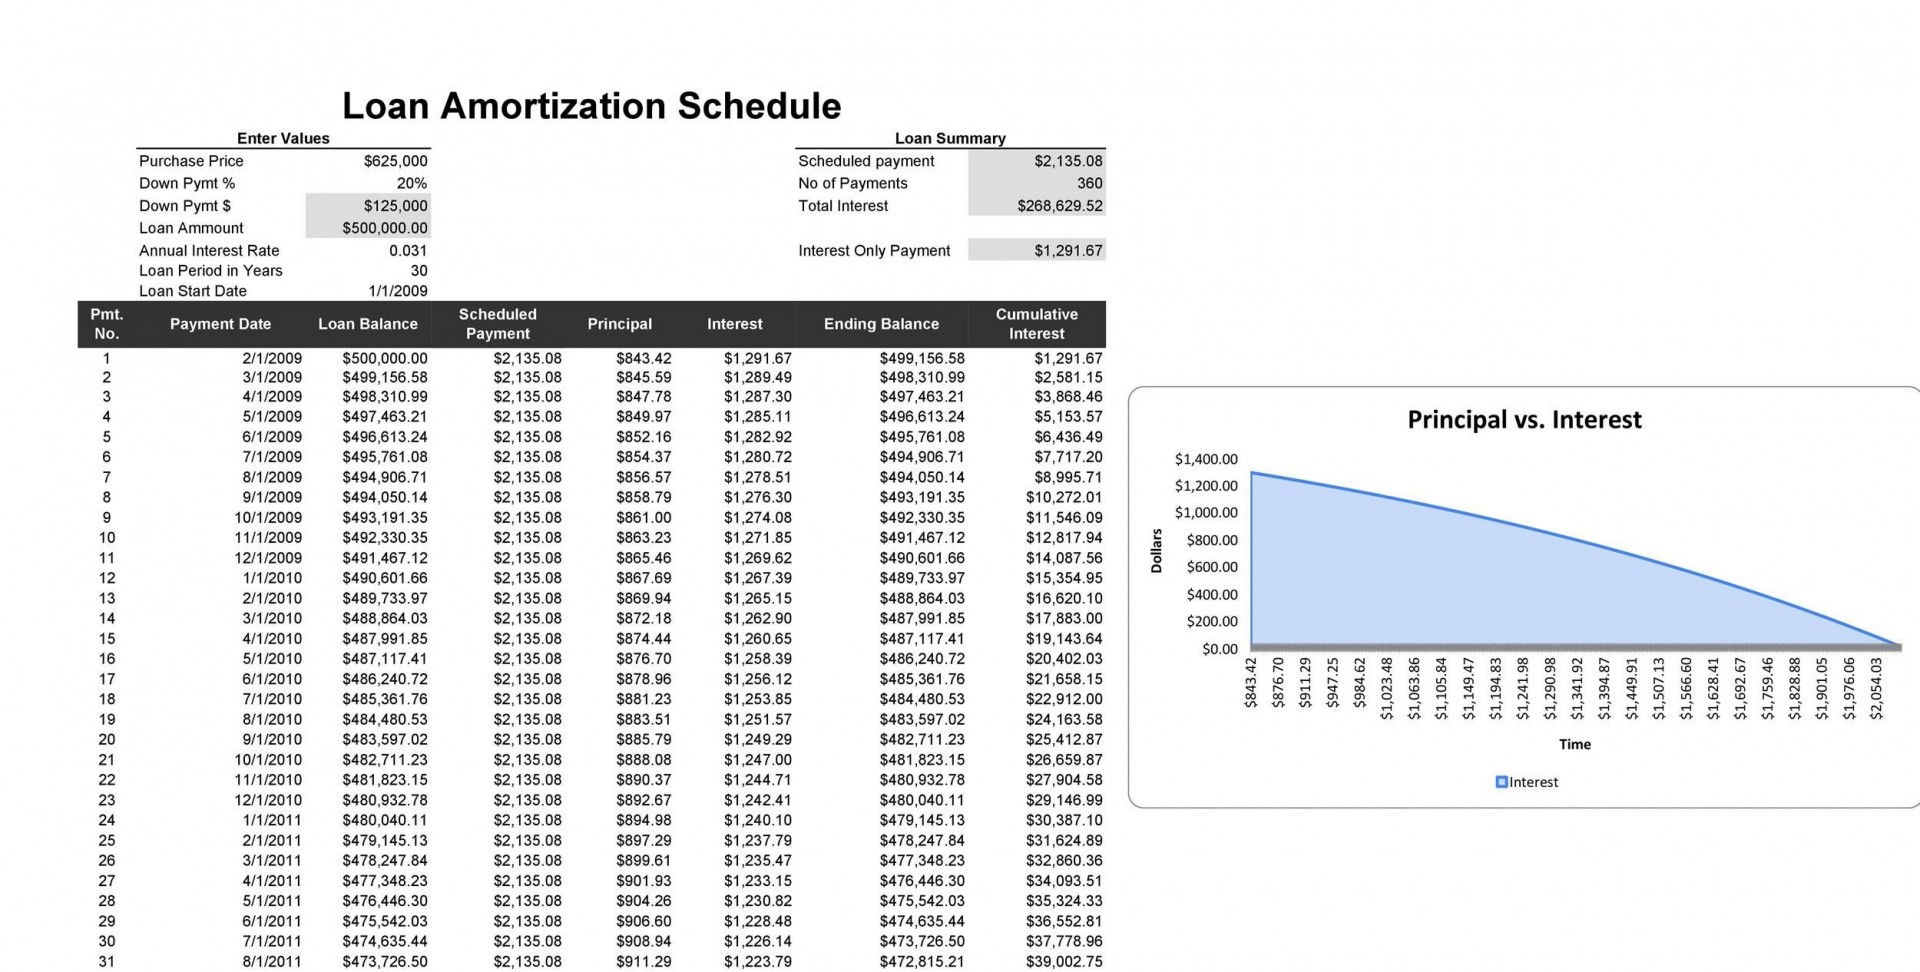 009 Phenomenal Loan Amortization Template Excel High Definition  Schedule Free 20101920